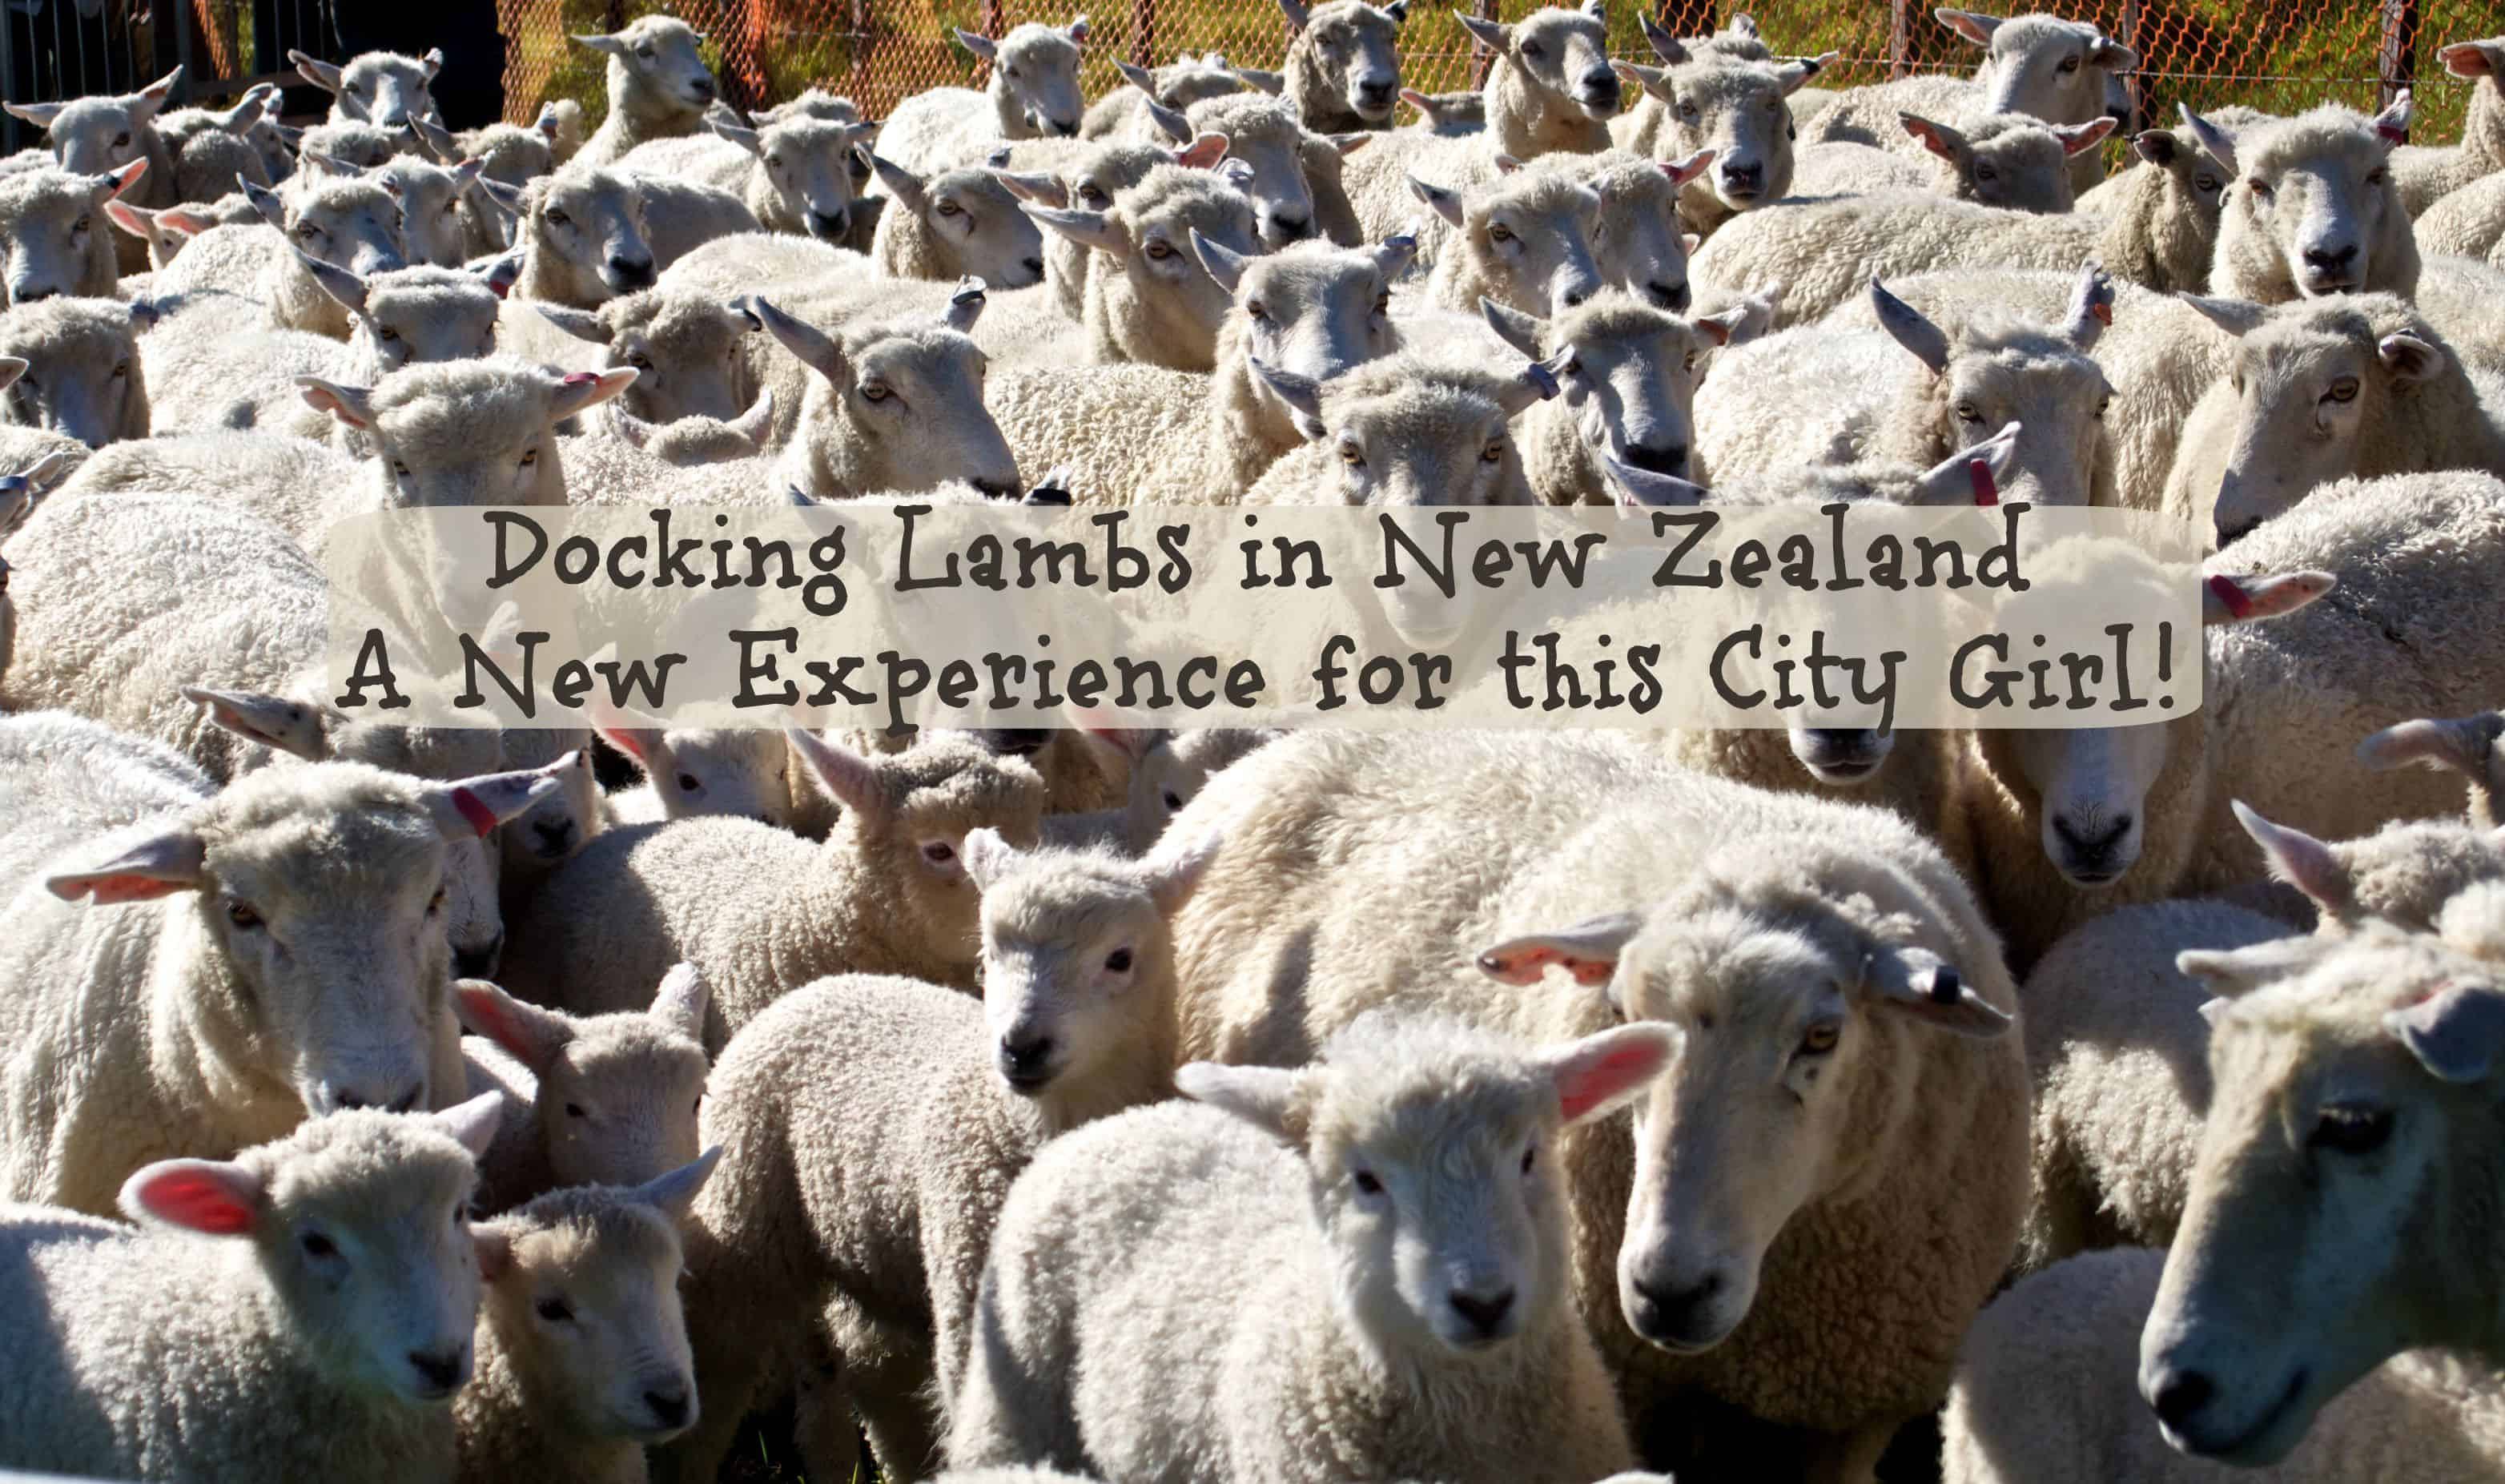 Docking Lambs in New Zealand